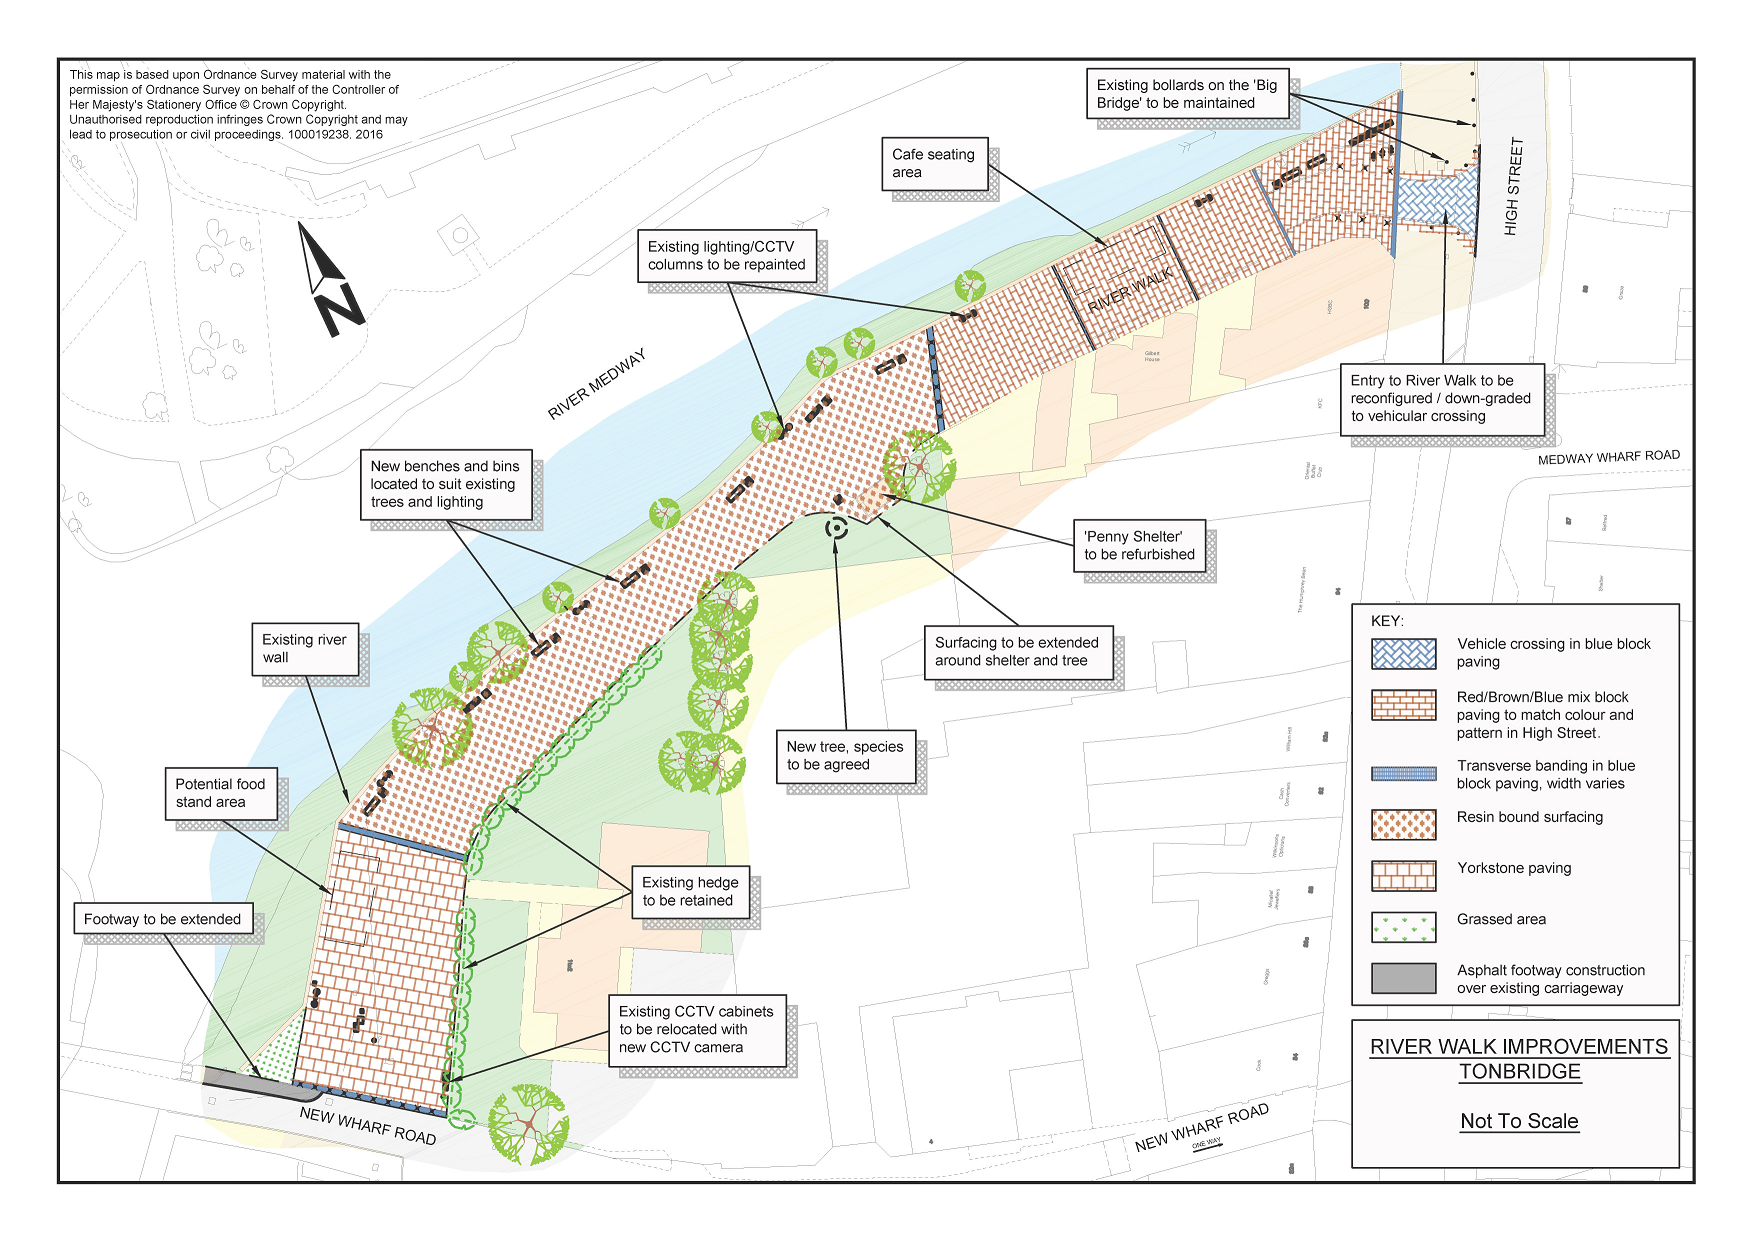 A map of the River Walk renovations